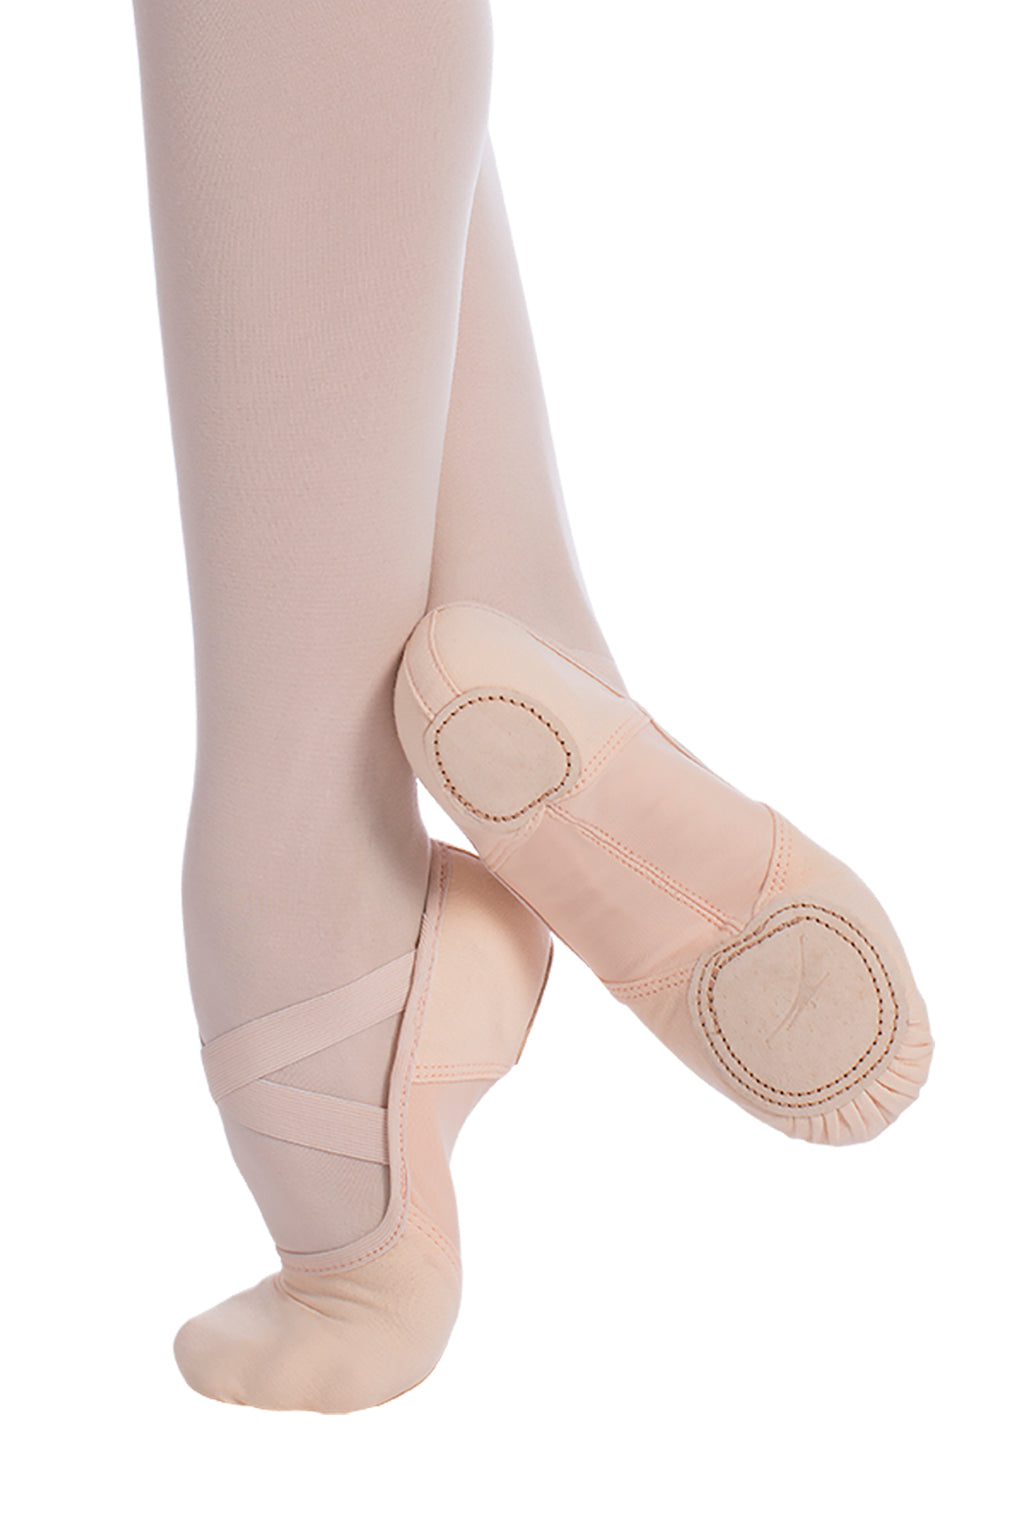 So Danca Bellamy Canvas Ballet Slipper - SD122